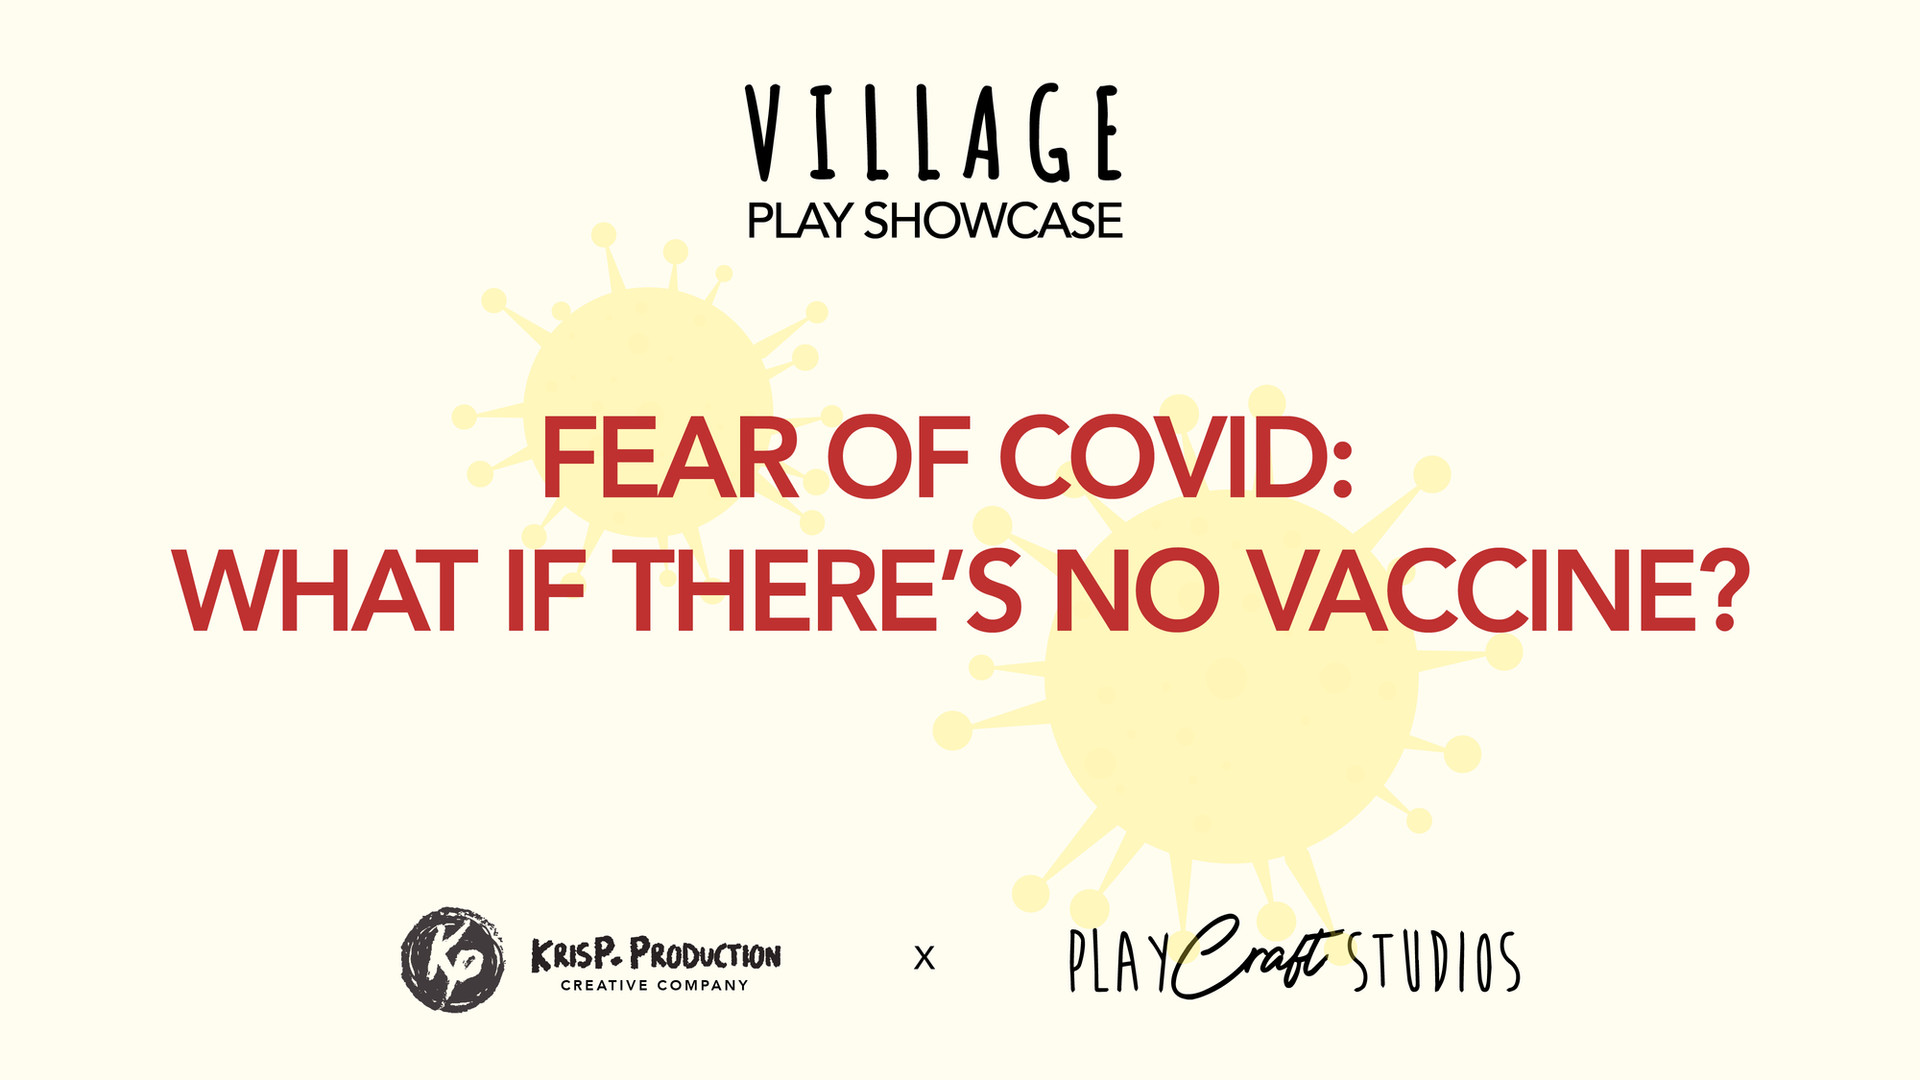 VILLAGE: FEAR OF COVID